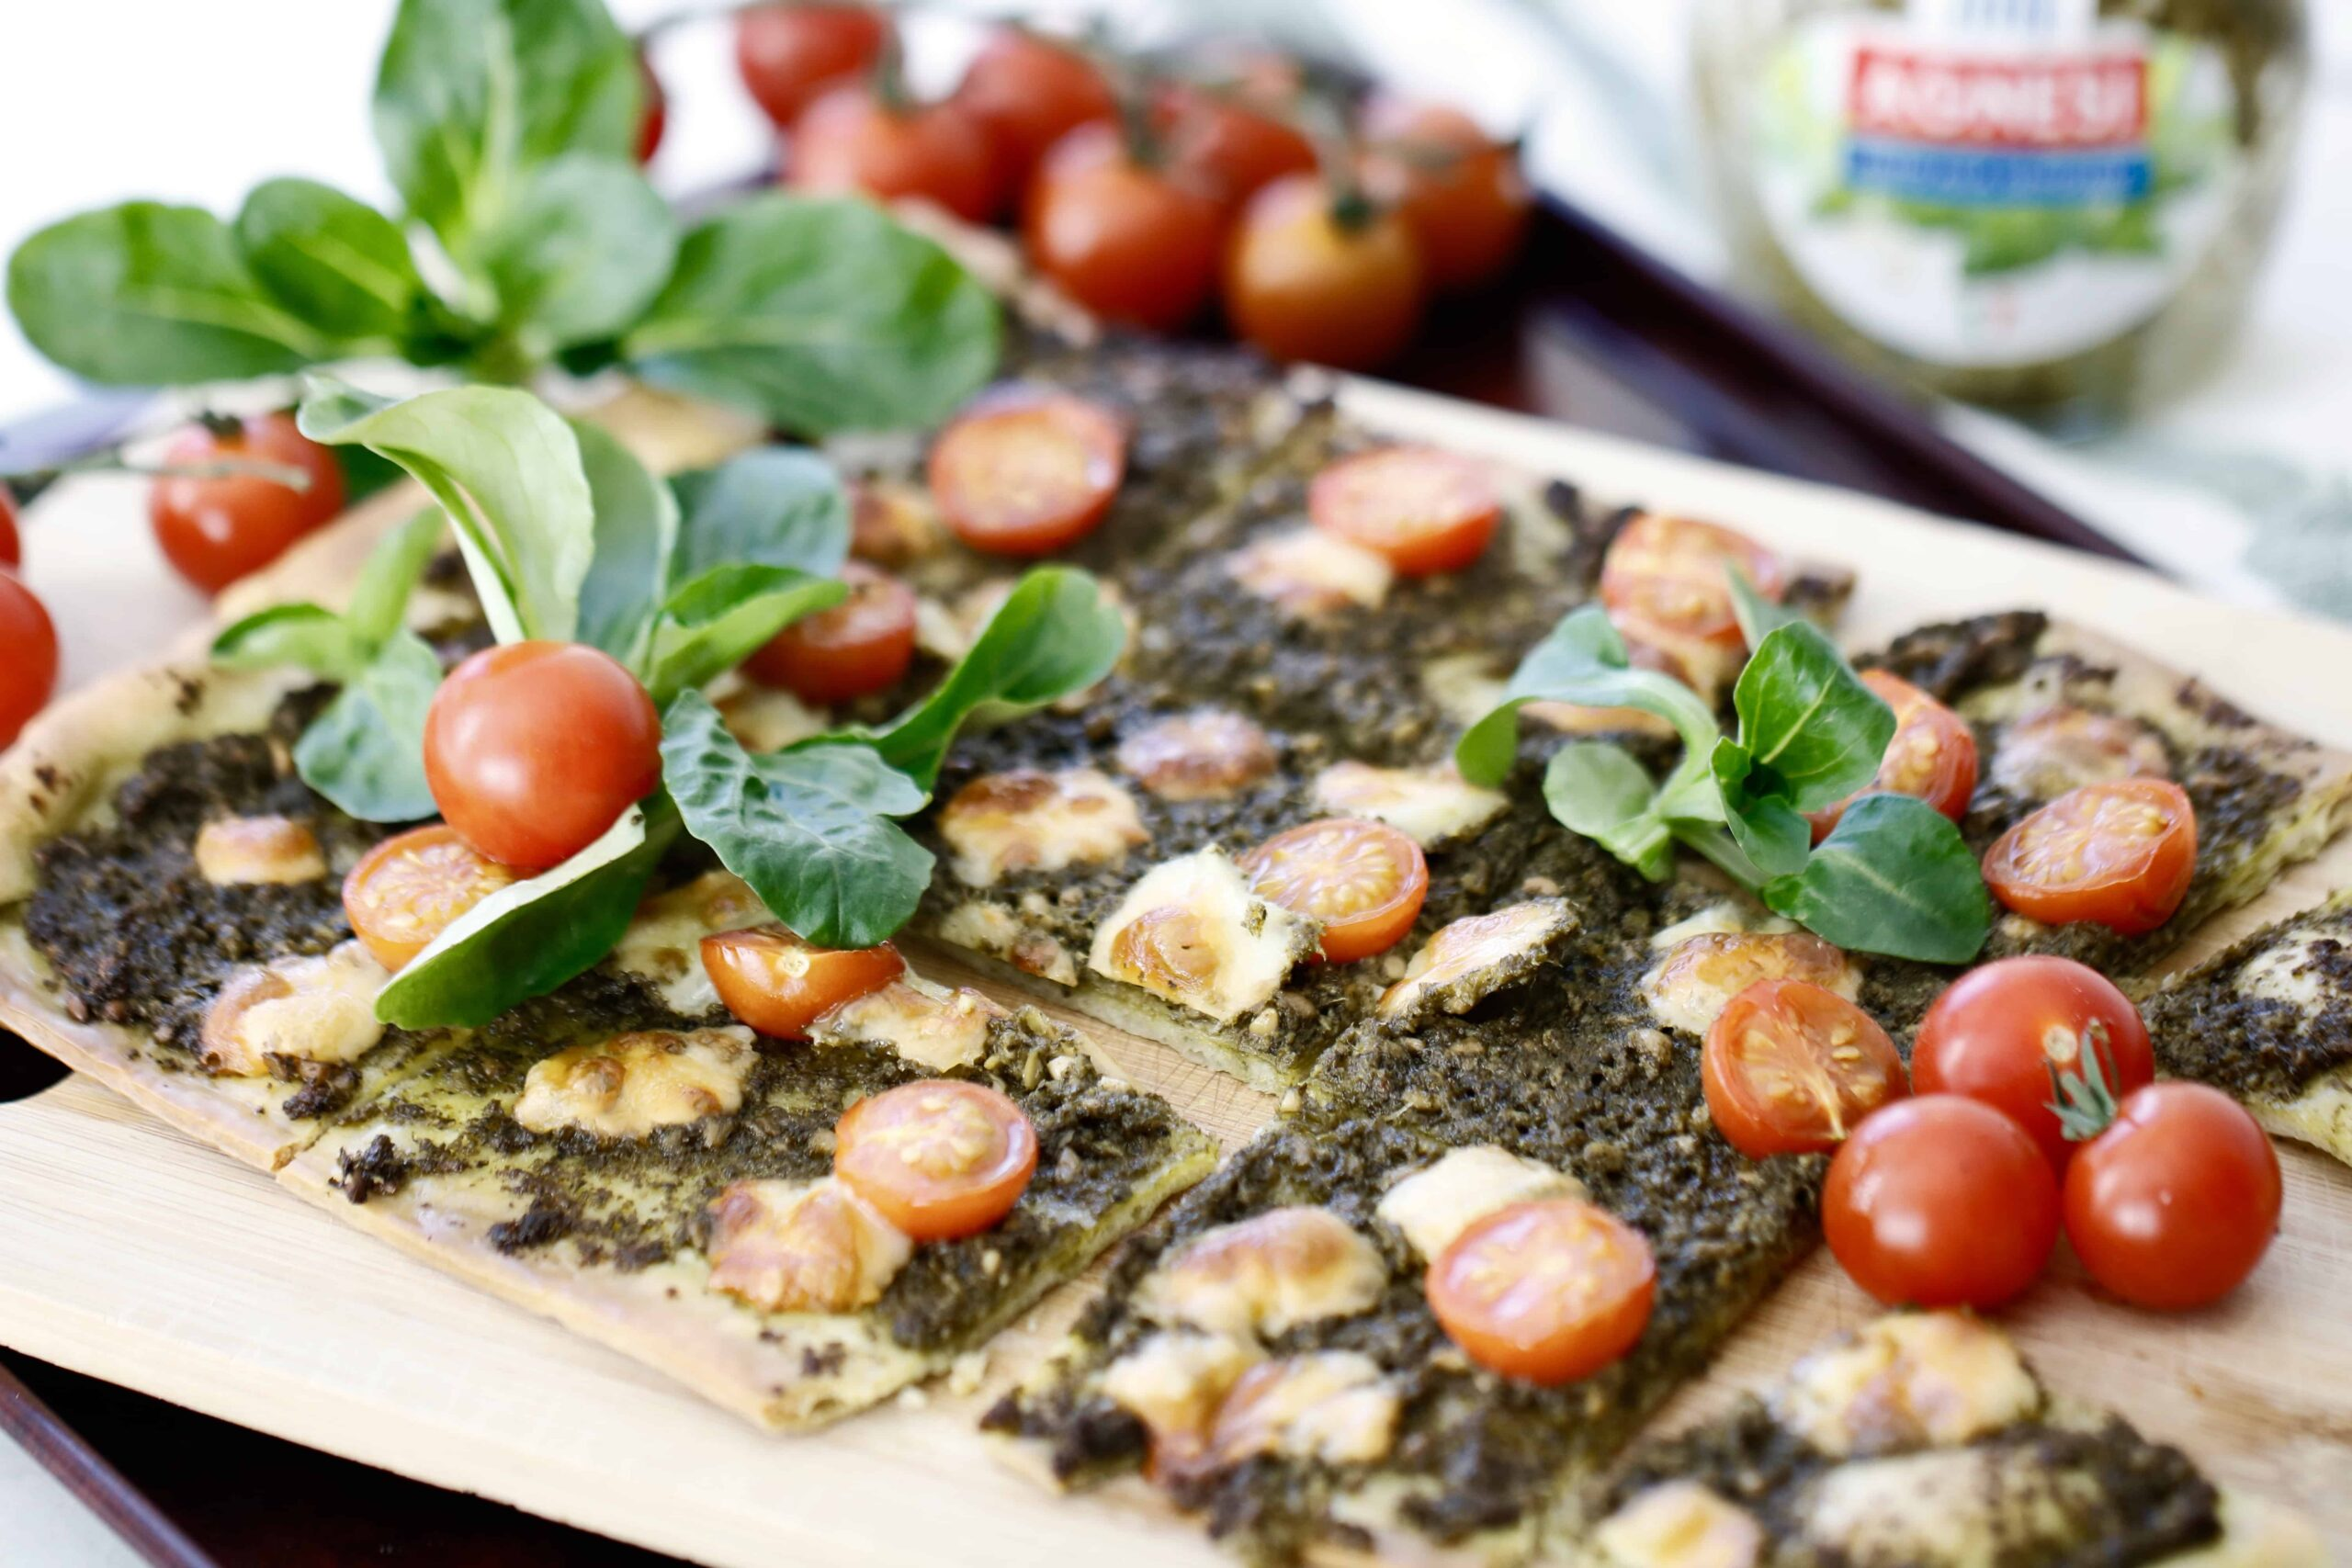 Asiago Pesto Pizza with Broiled Tomatoes - Vegetarian, Gluten Free Option @shawsimpleswaps